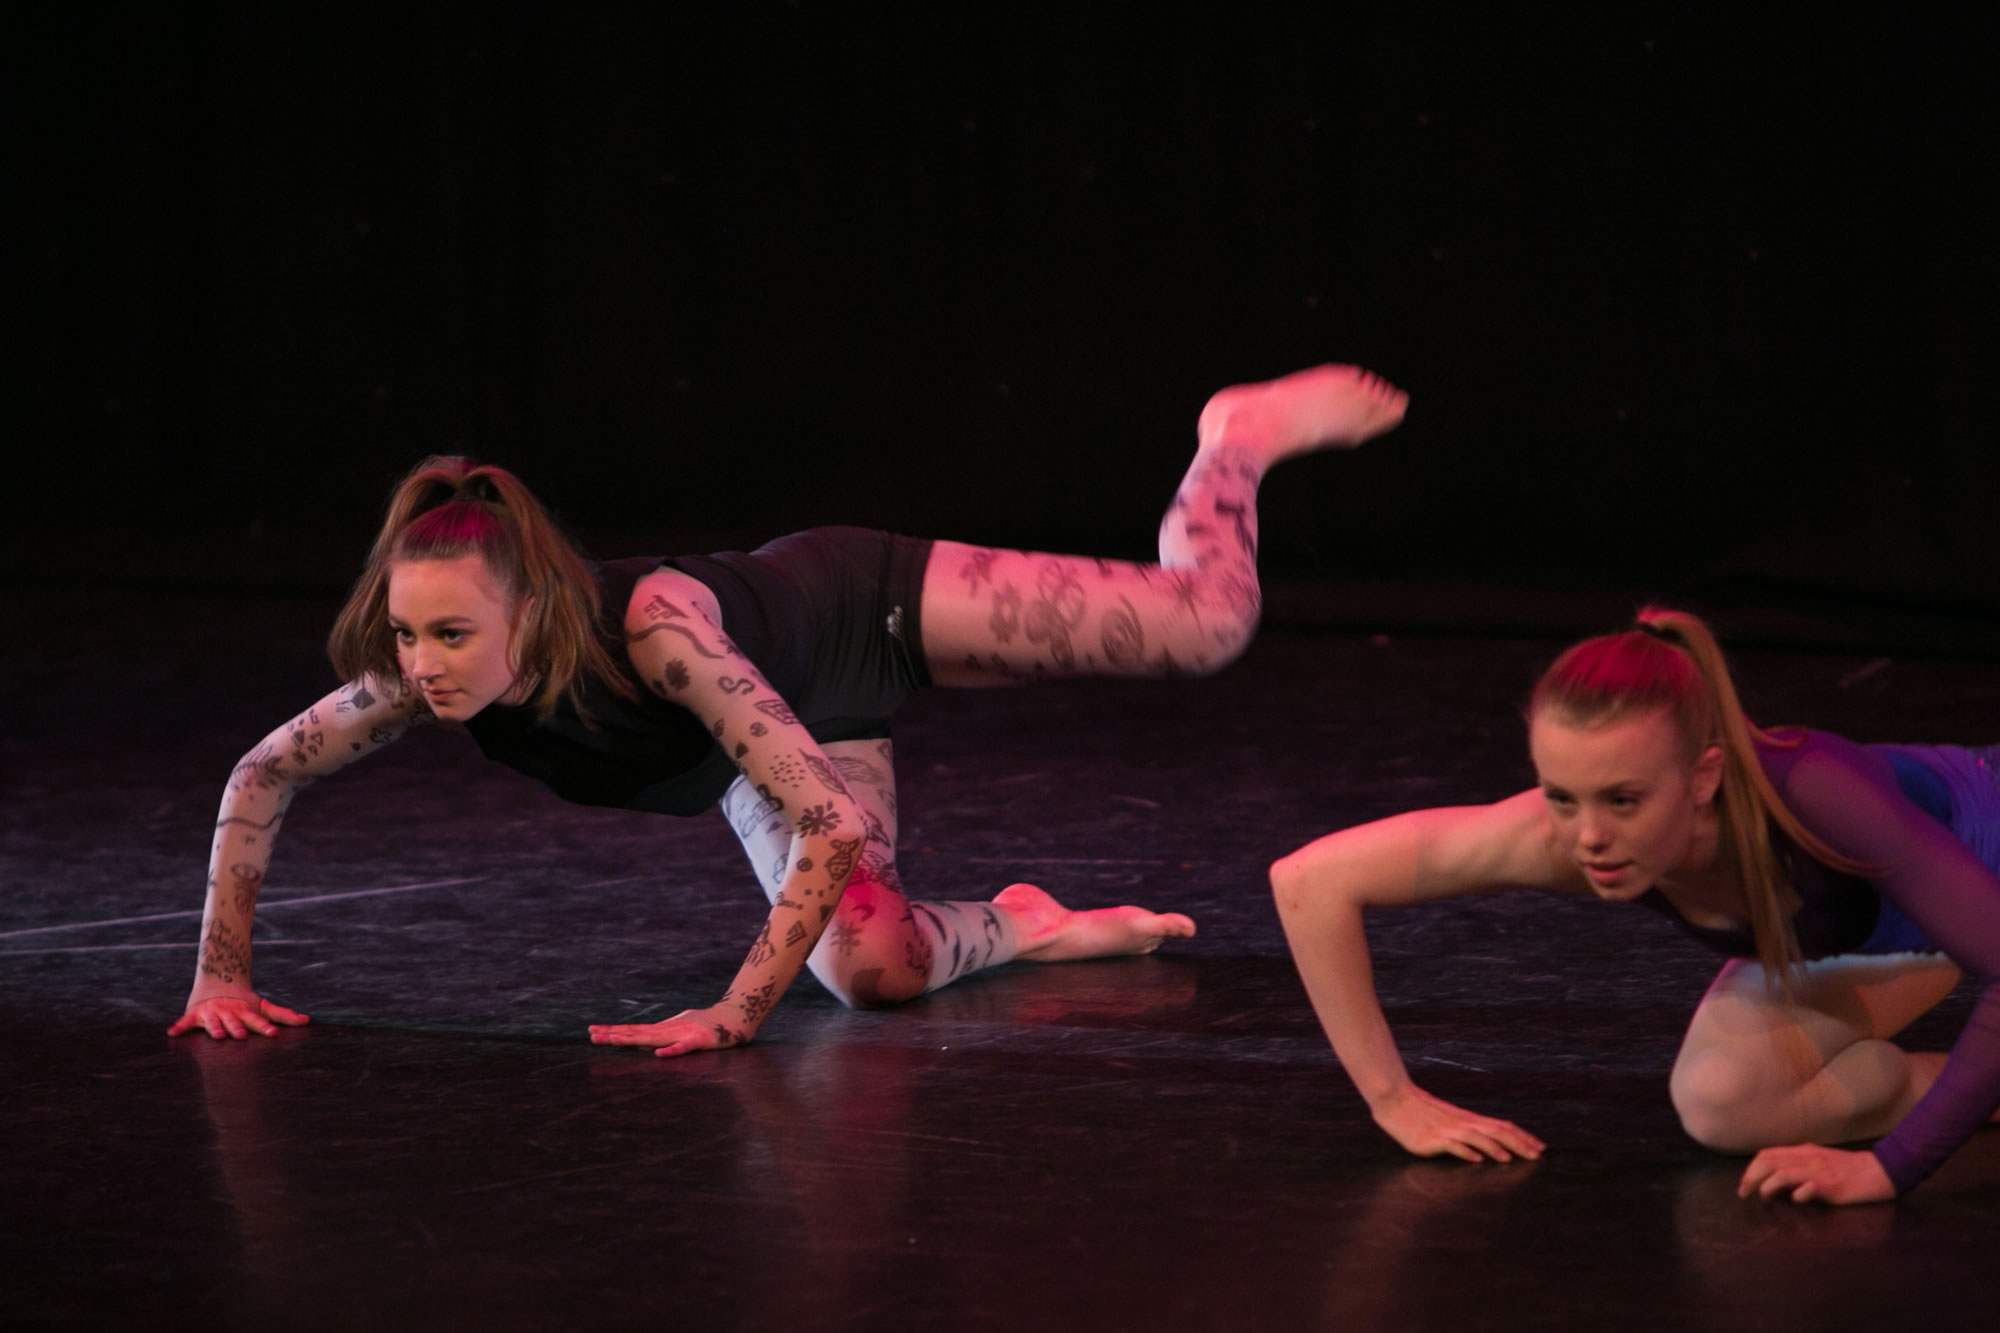 Hitchin_School_of_Dance_Show_2019-SM1_1771.jpg